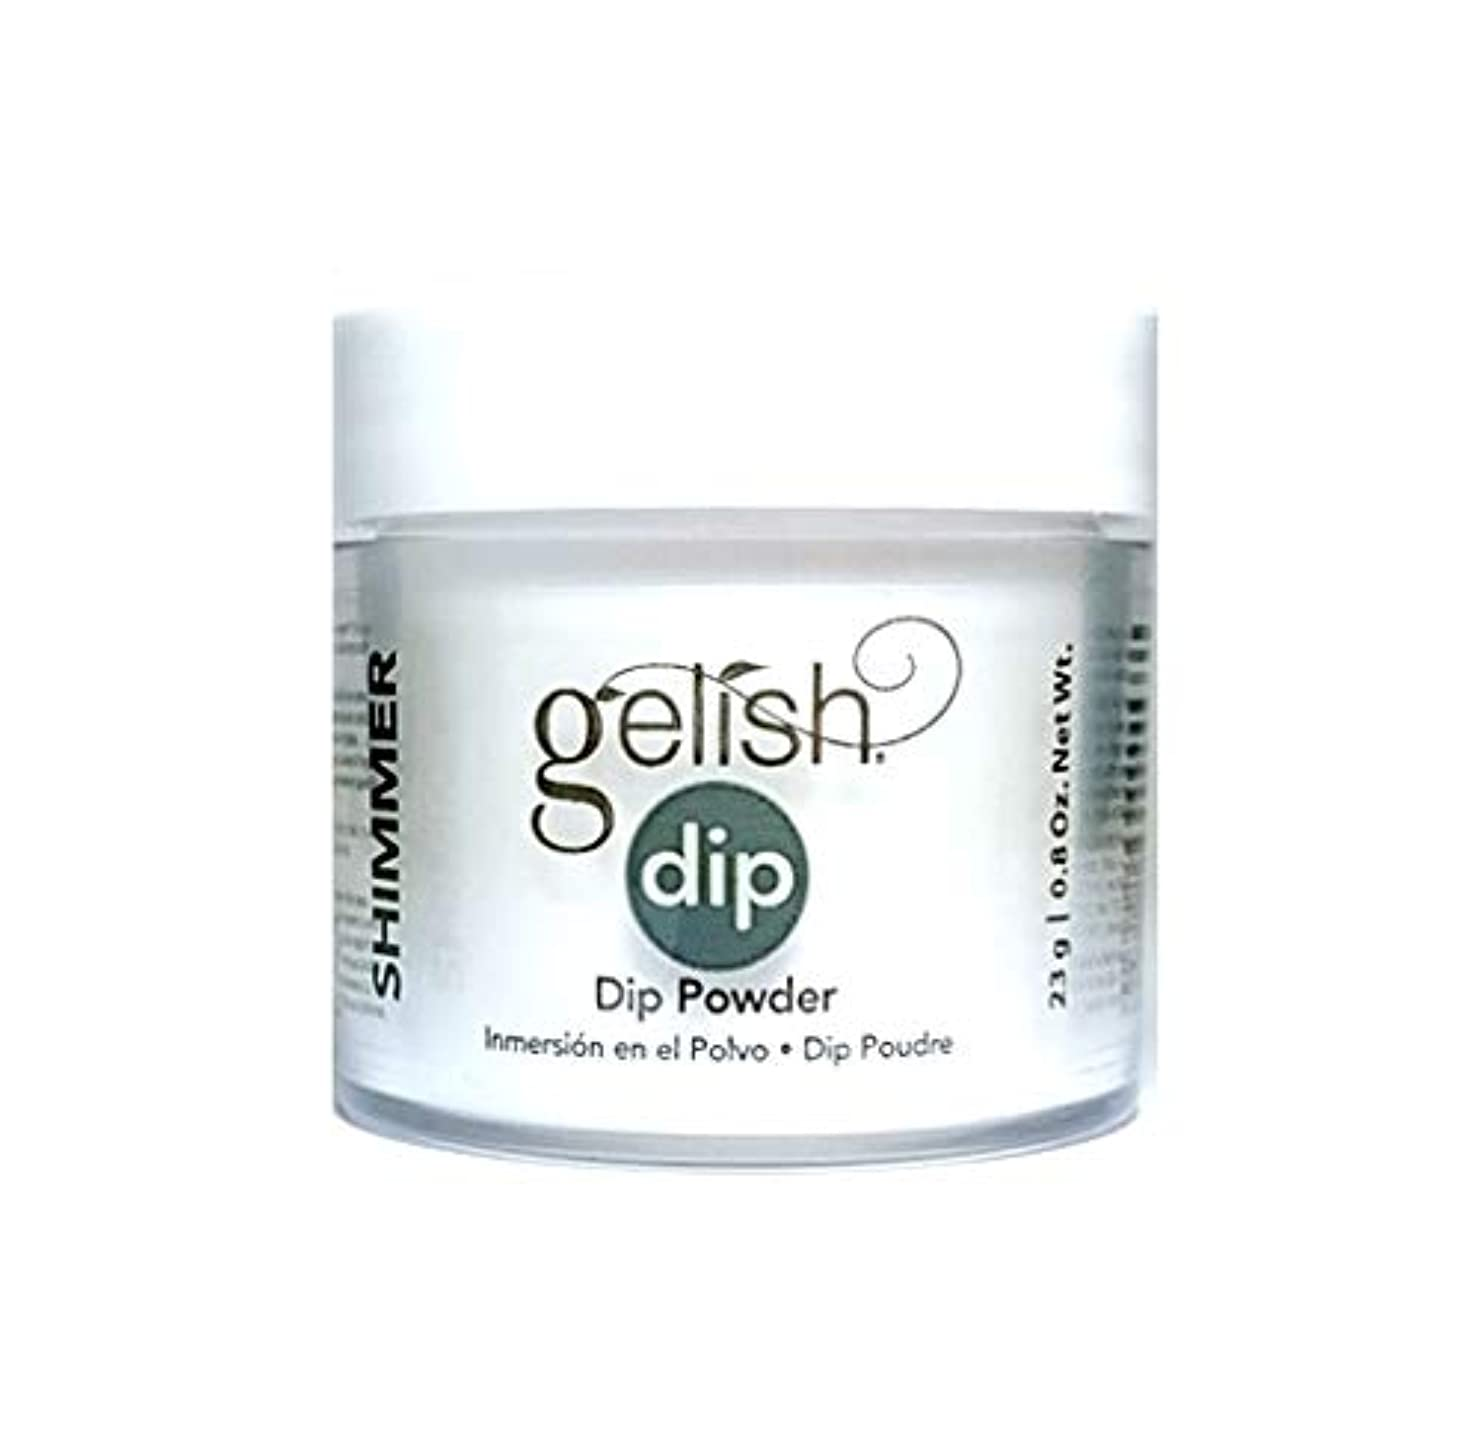 自宅でイタリアのモロニックHarmony Gelish - Dip Powder - Izzy Wizzy, Let's Get Busy - 23g / 0.8oz